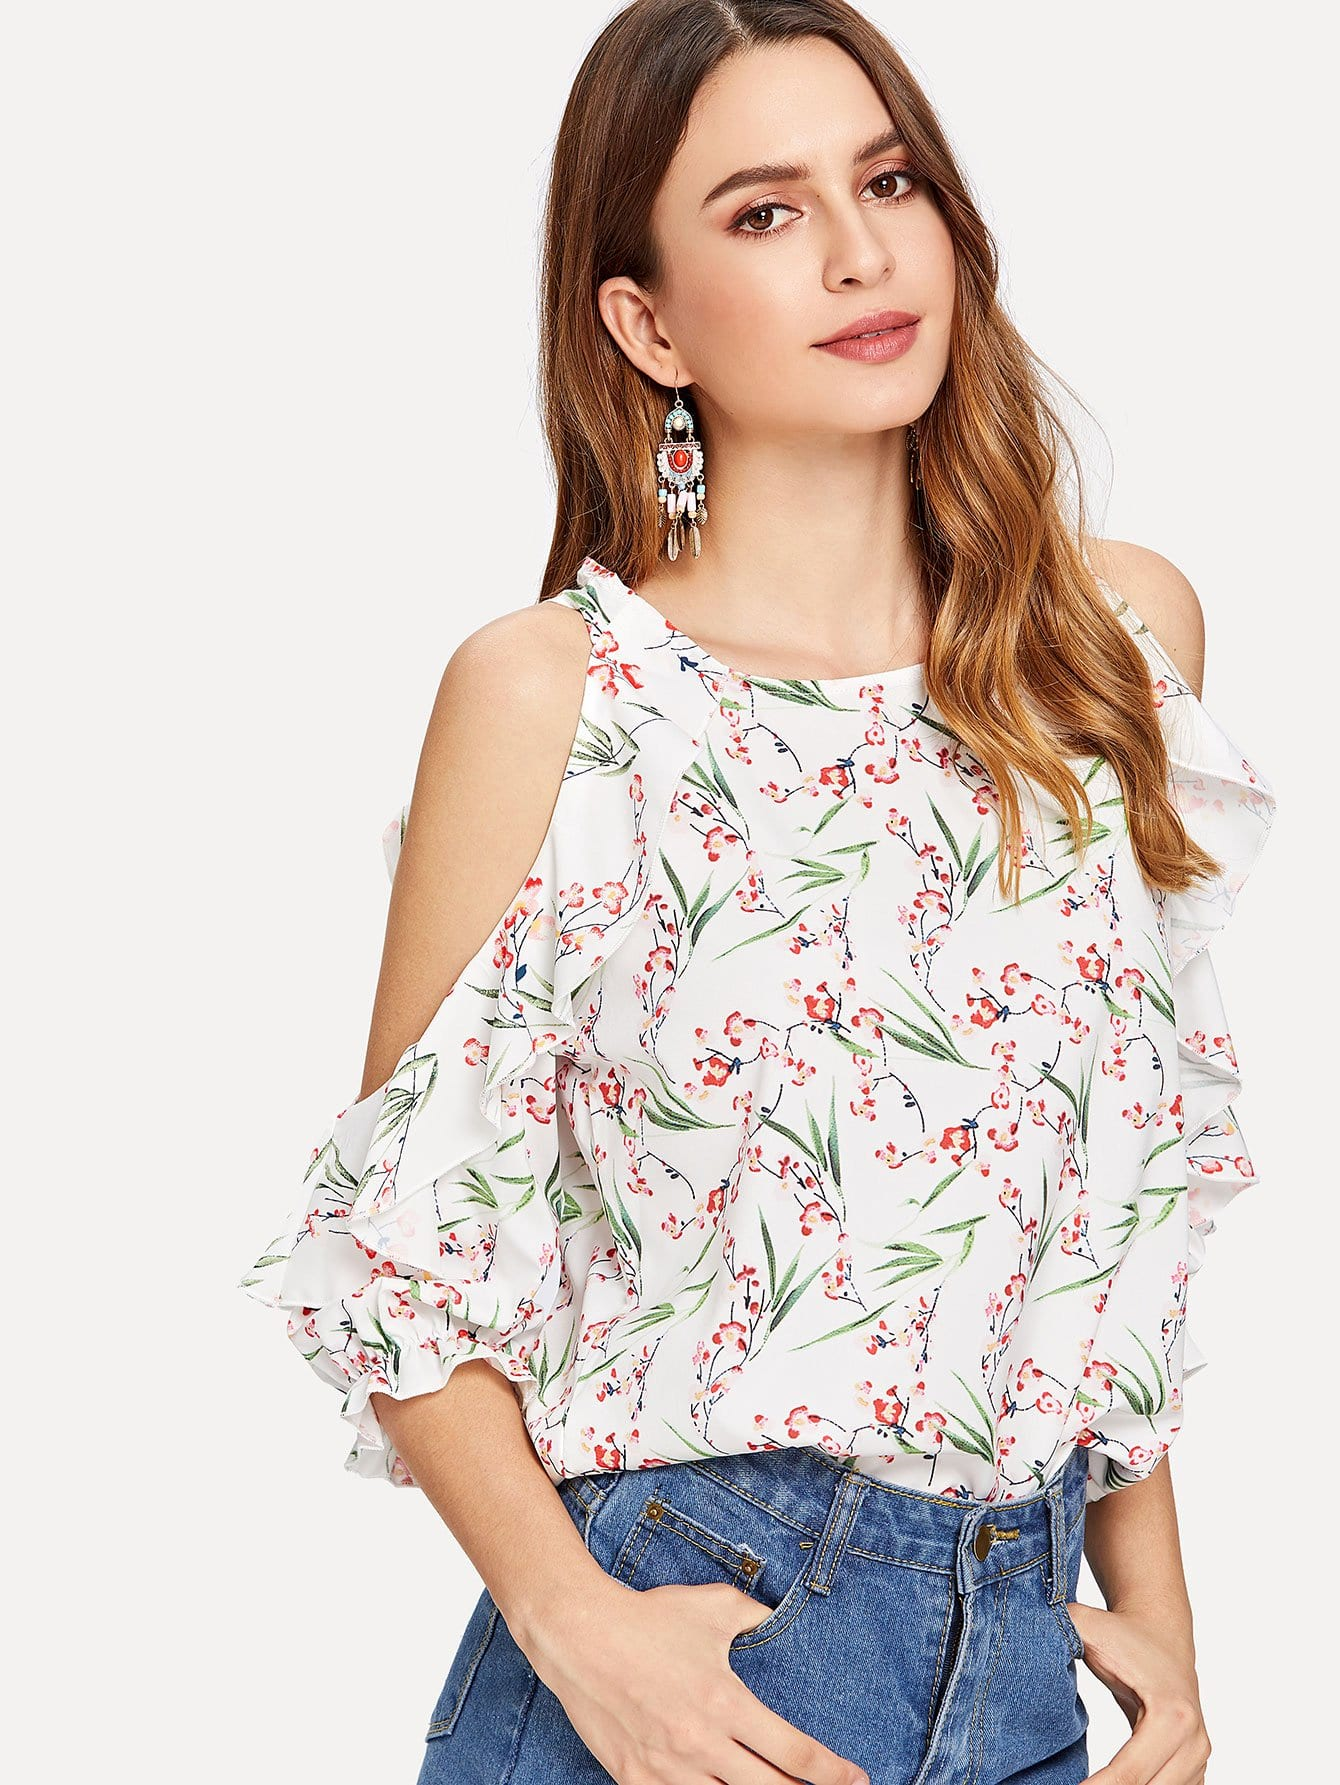 Floral Print Open Shoulder Ruffle Blouse one shoulder floral print blouse